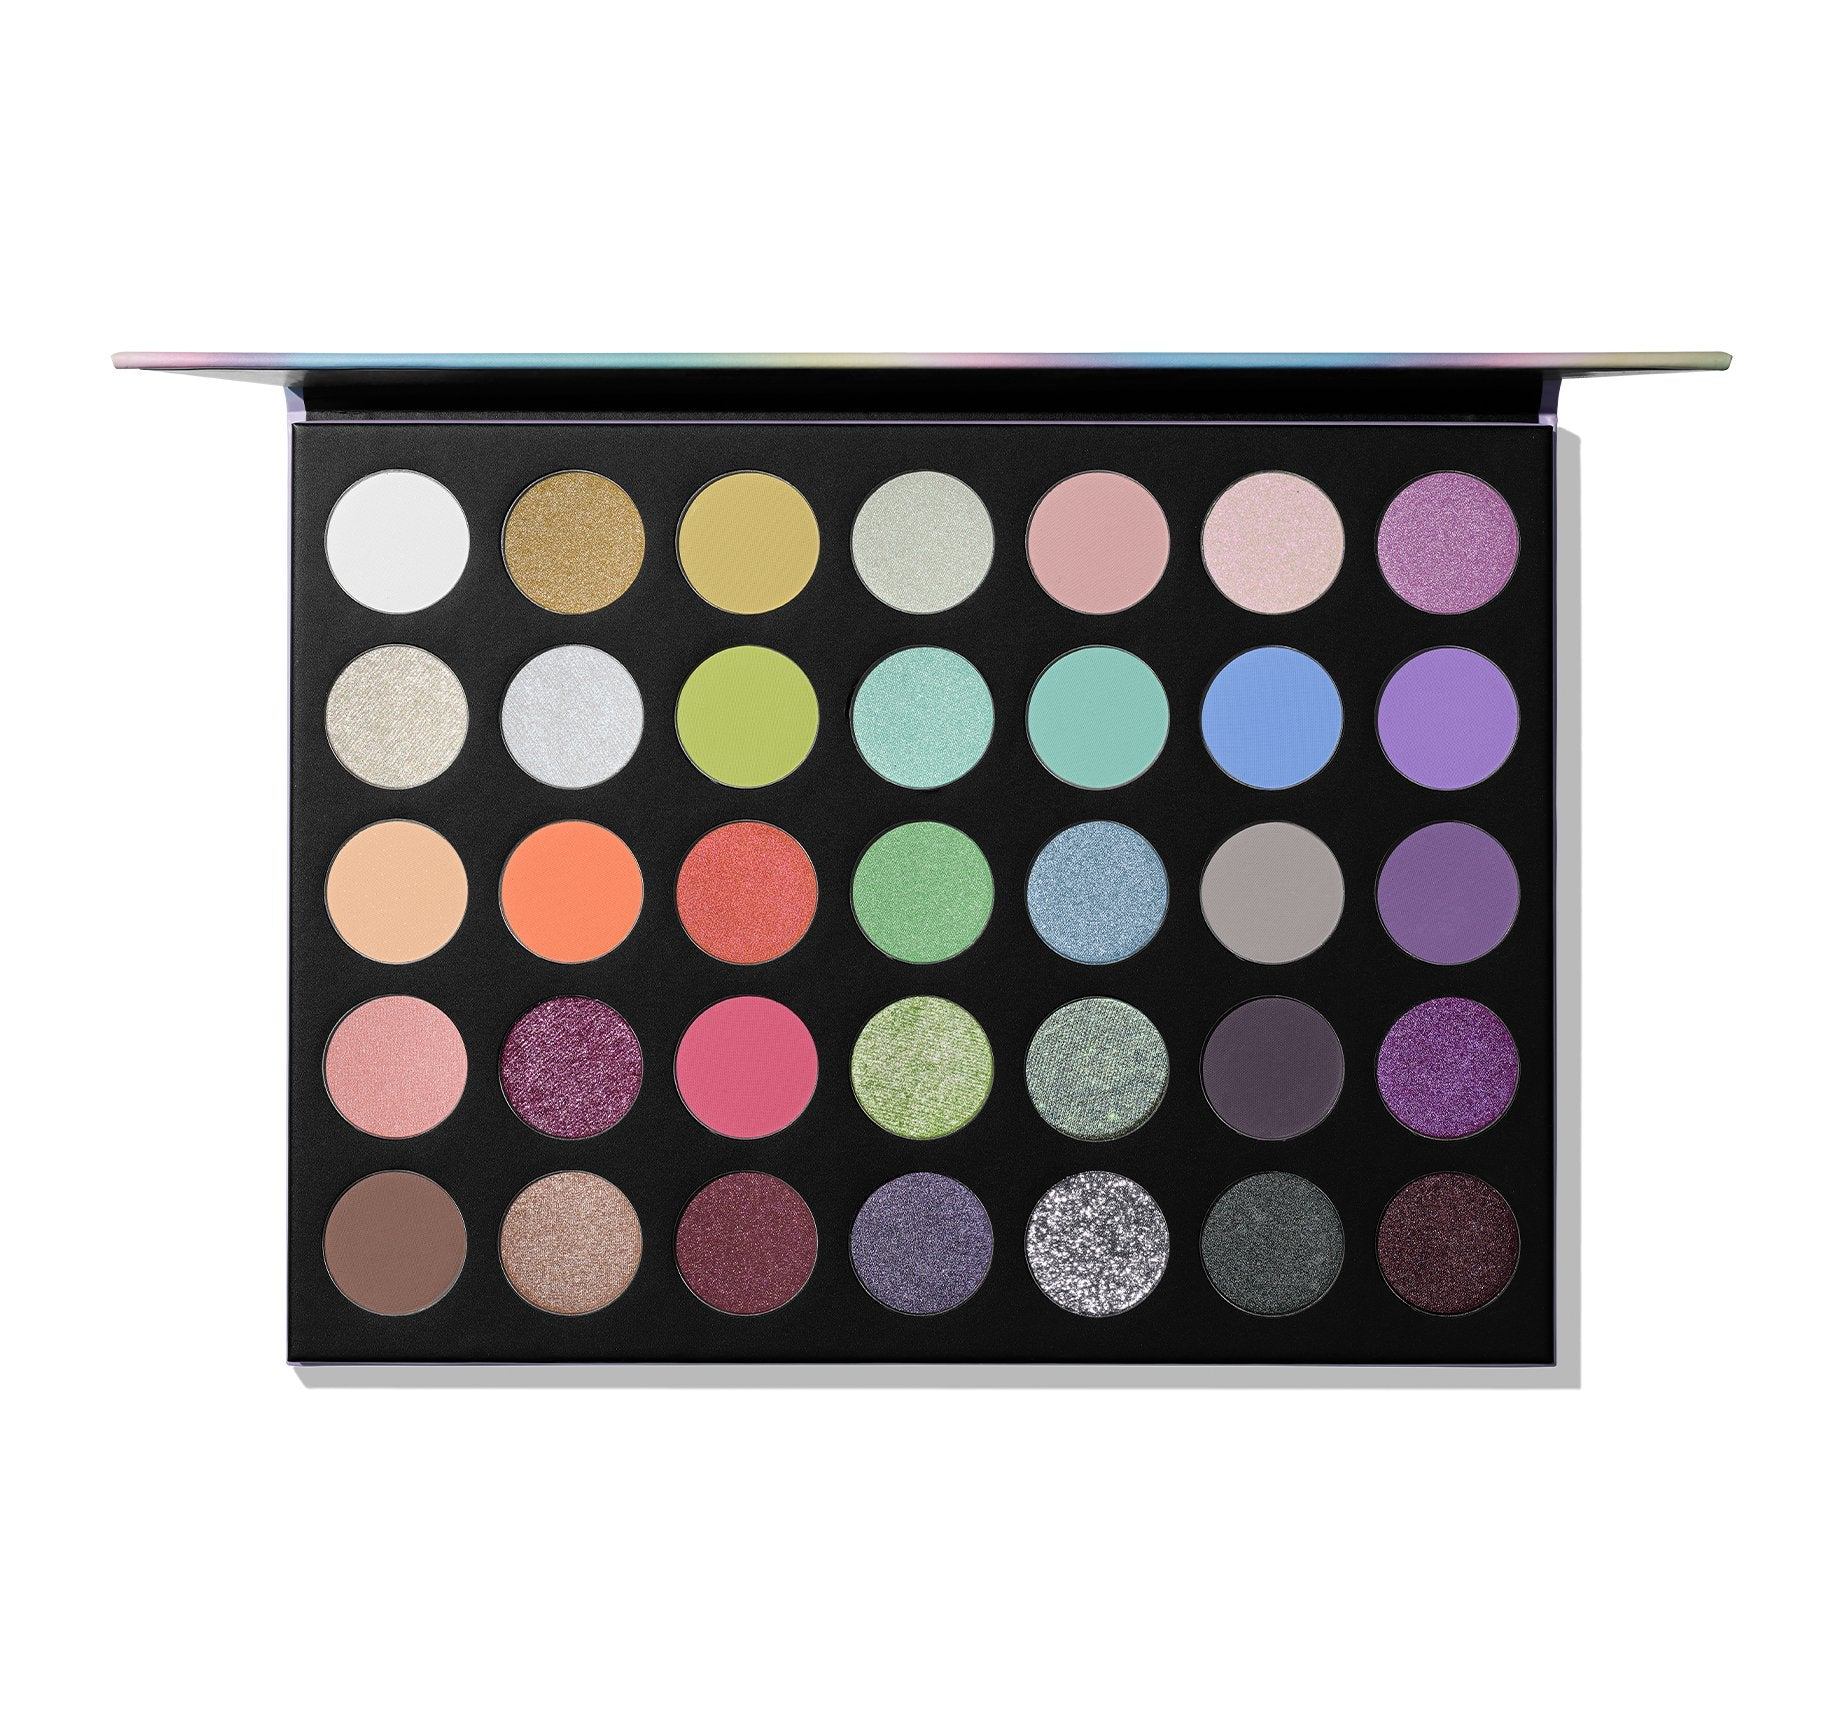 35I ICY FANTASY ARTISTRY PALETTE, view larger image